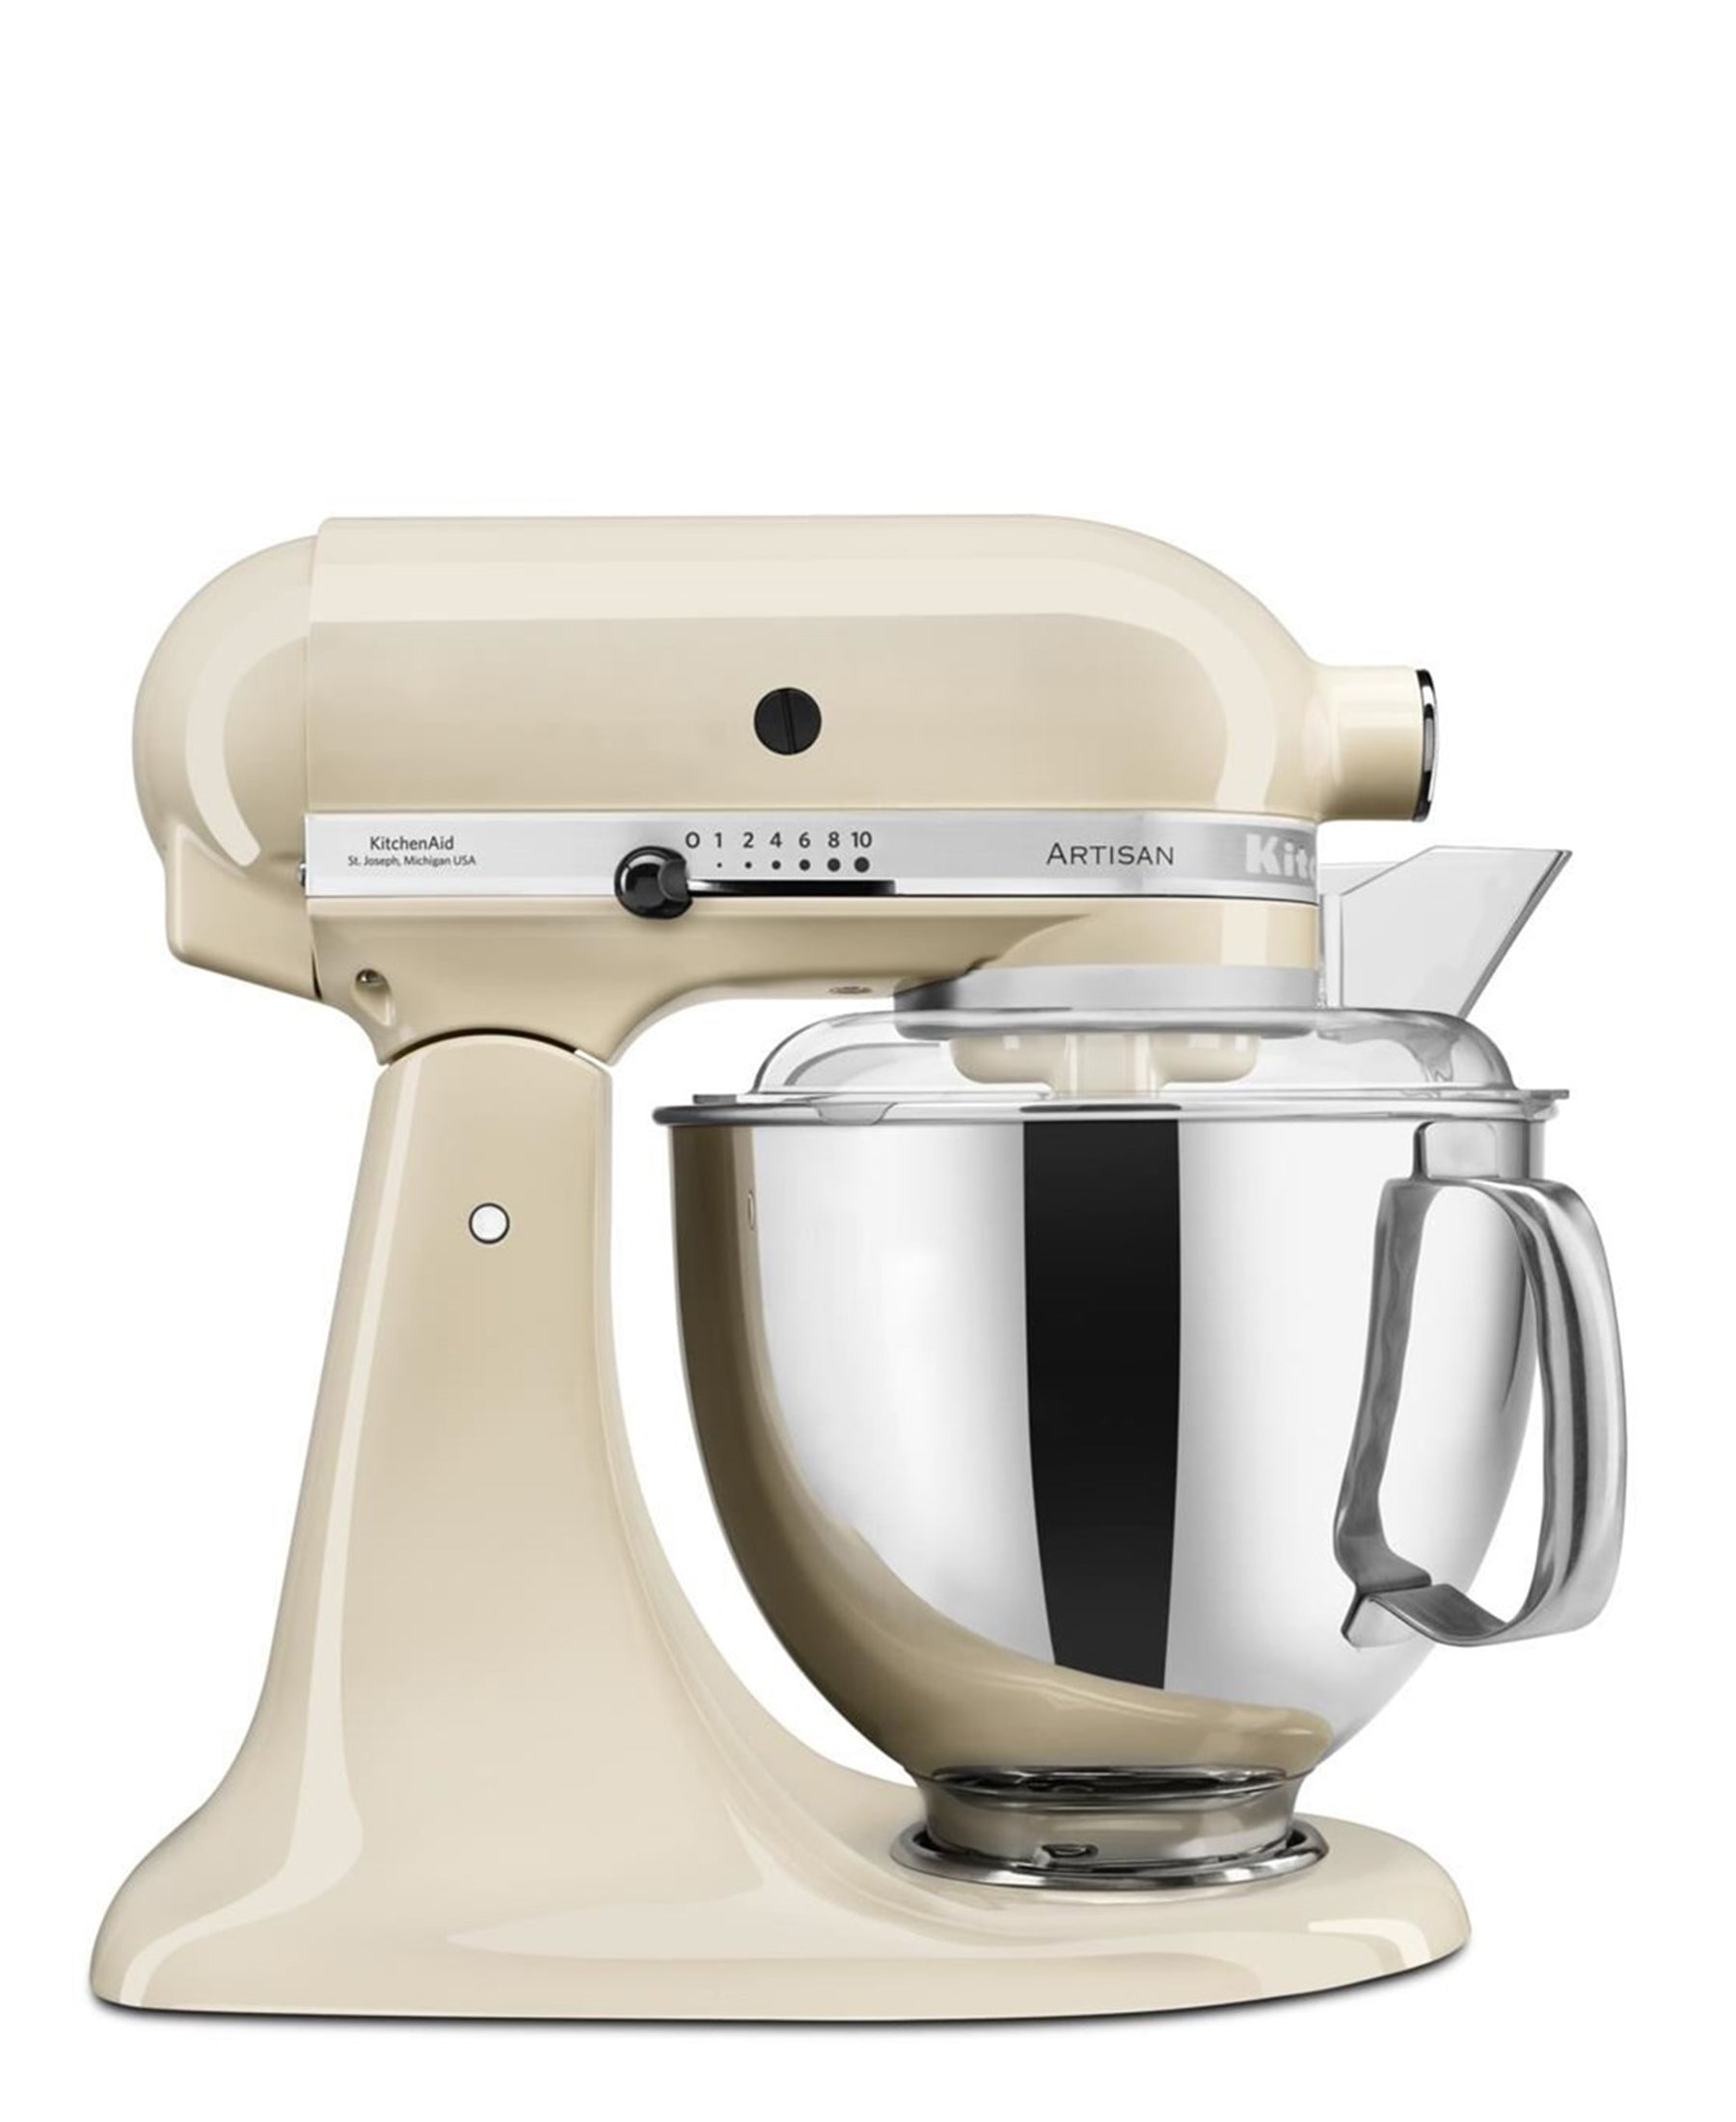 KitchenAid Artisan 4.8L Stand Mixer + Free S/S Bowl - Almond Cream